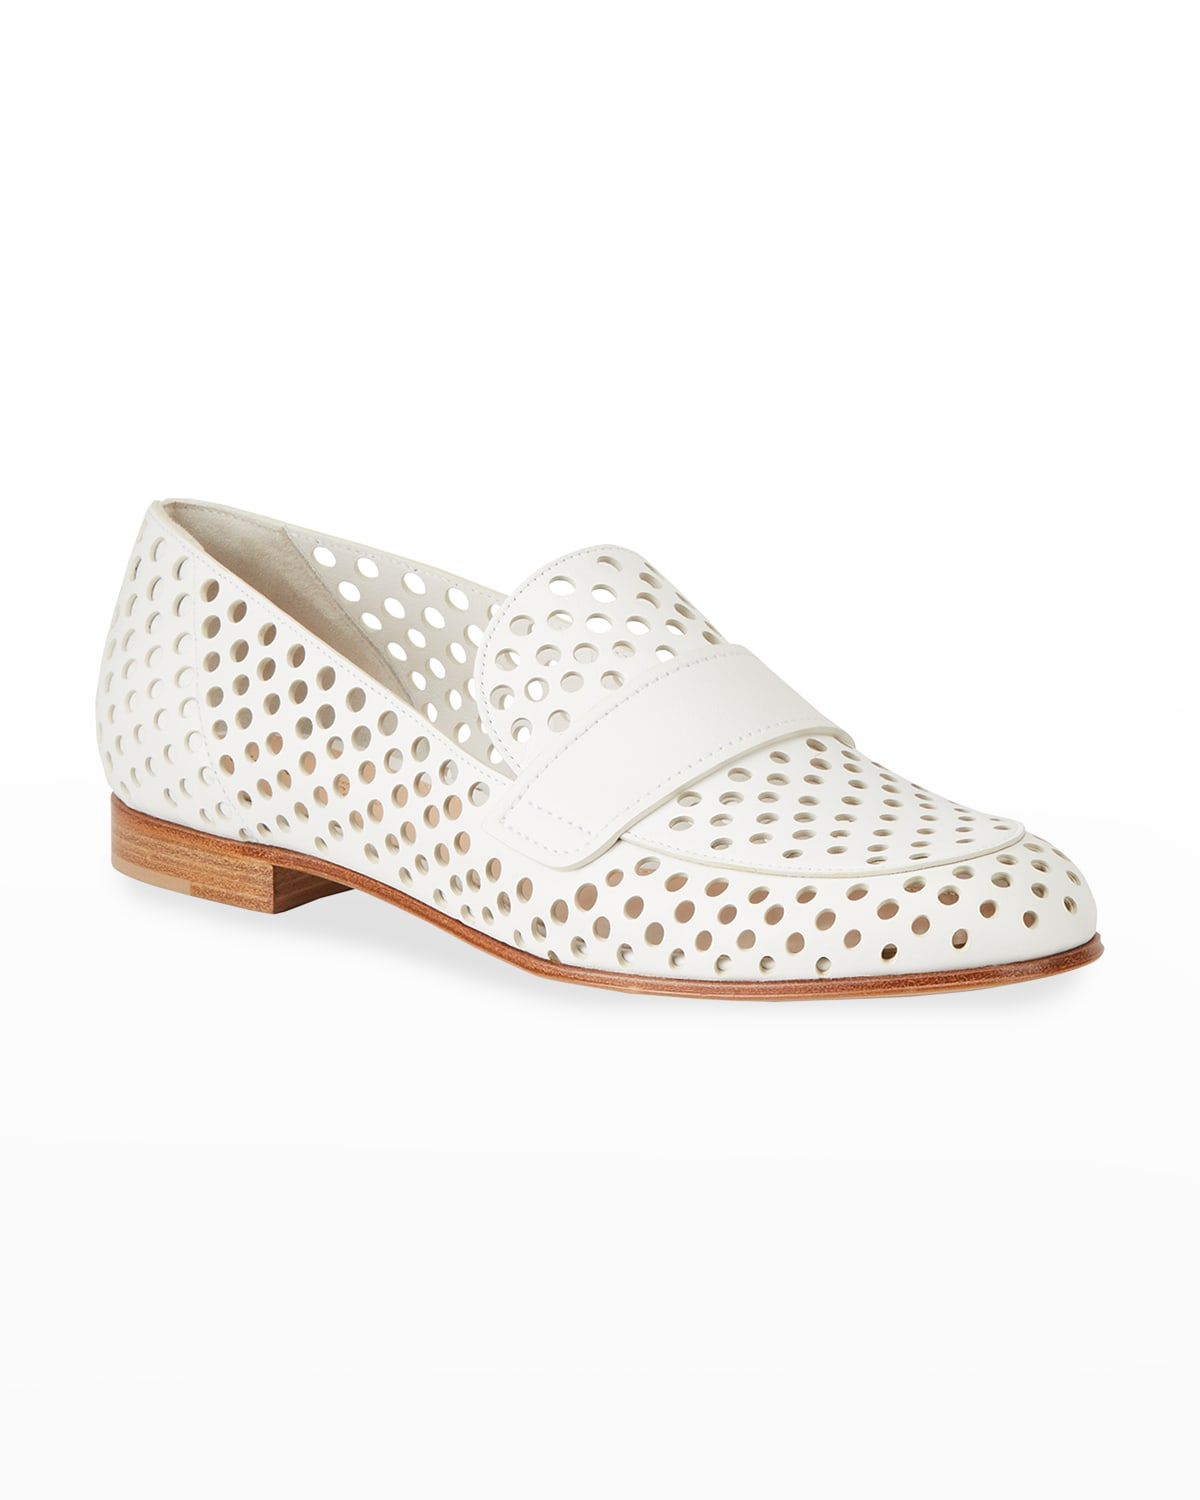 Perforated Leather Flat Loafers